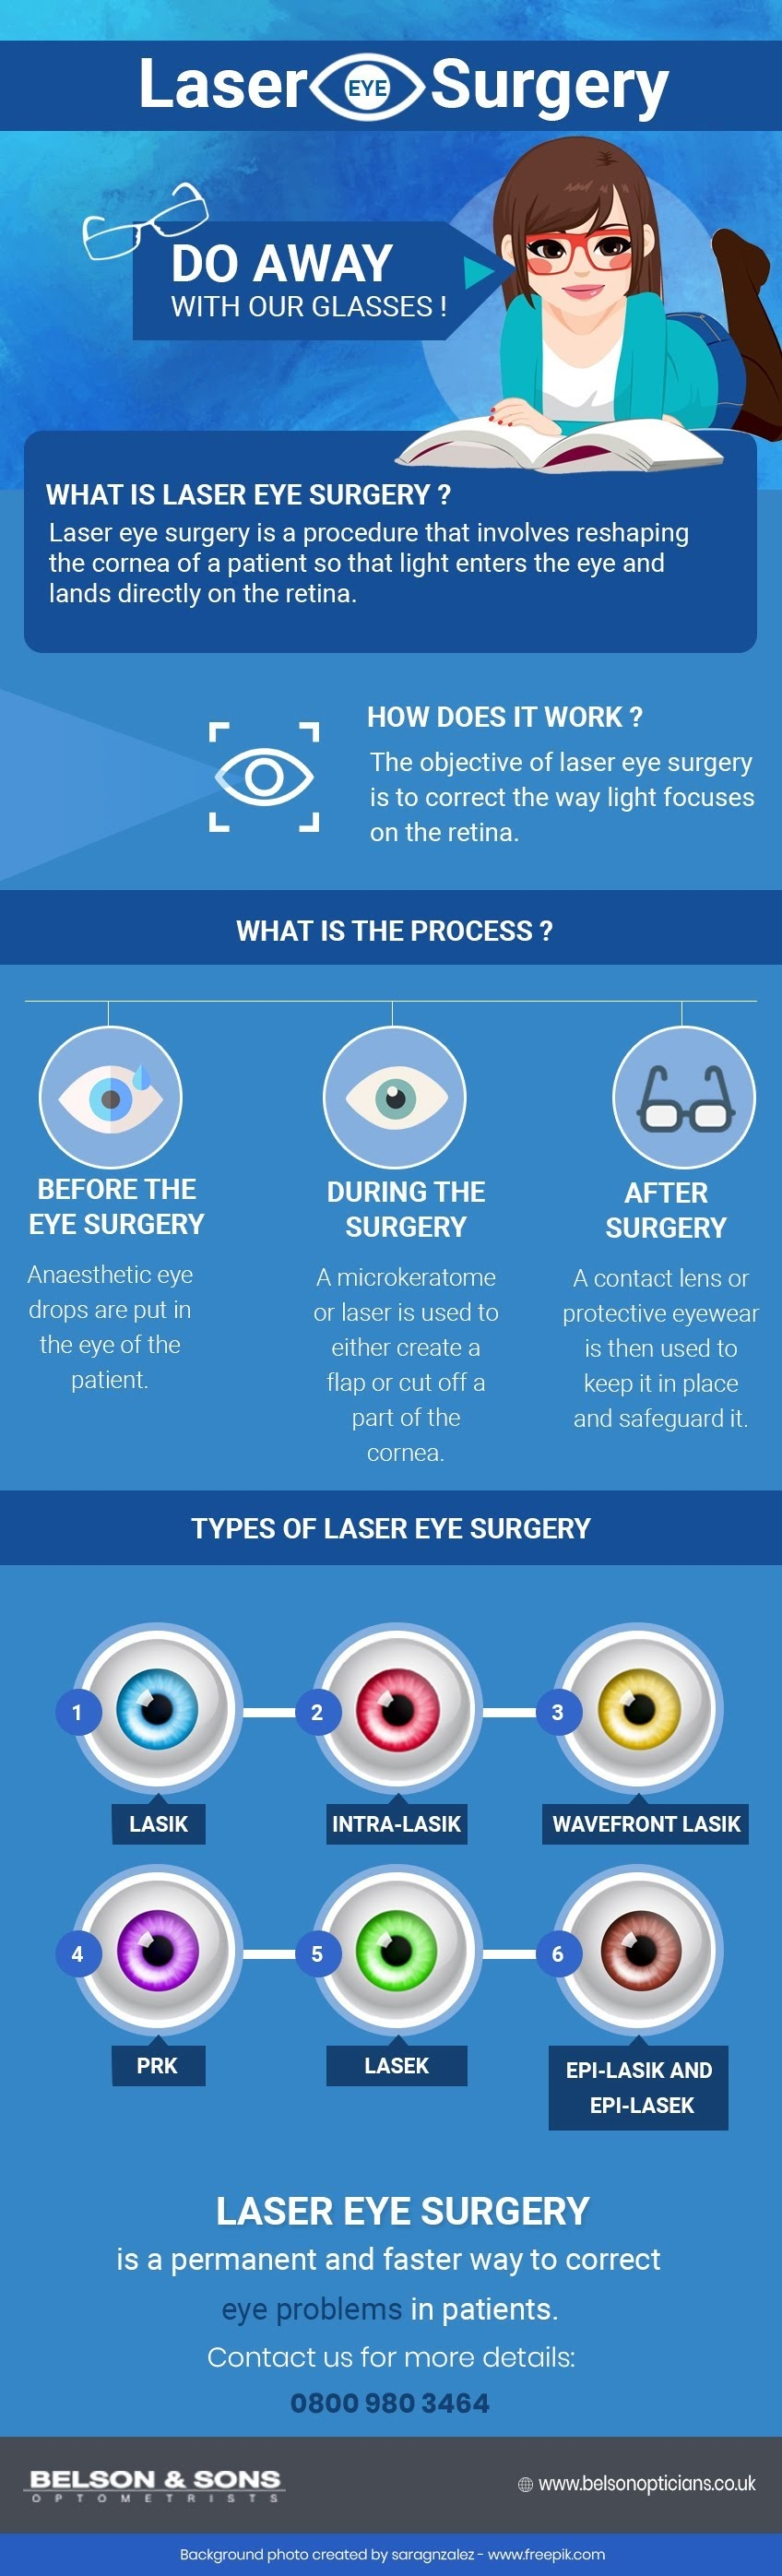 What Is Laser Eye Surgery? How Does It Work? #infographic